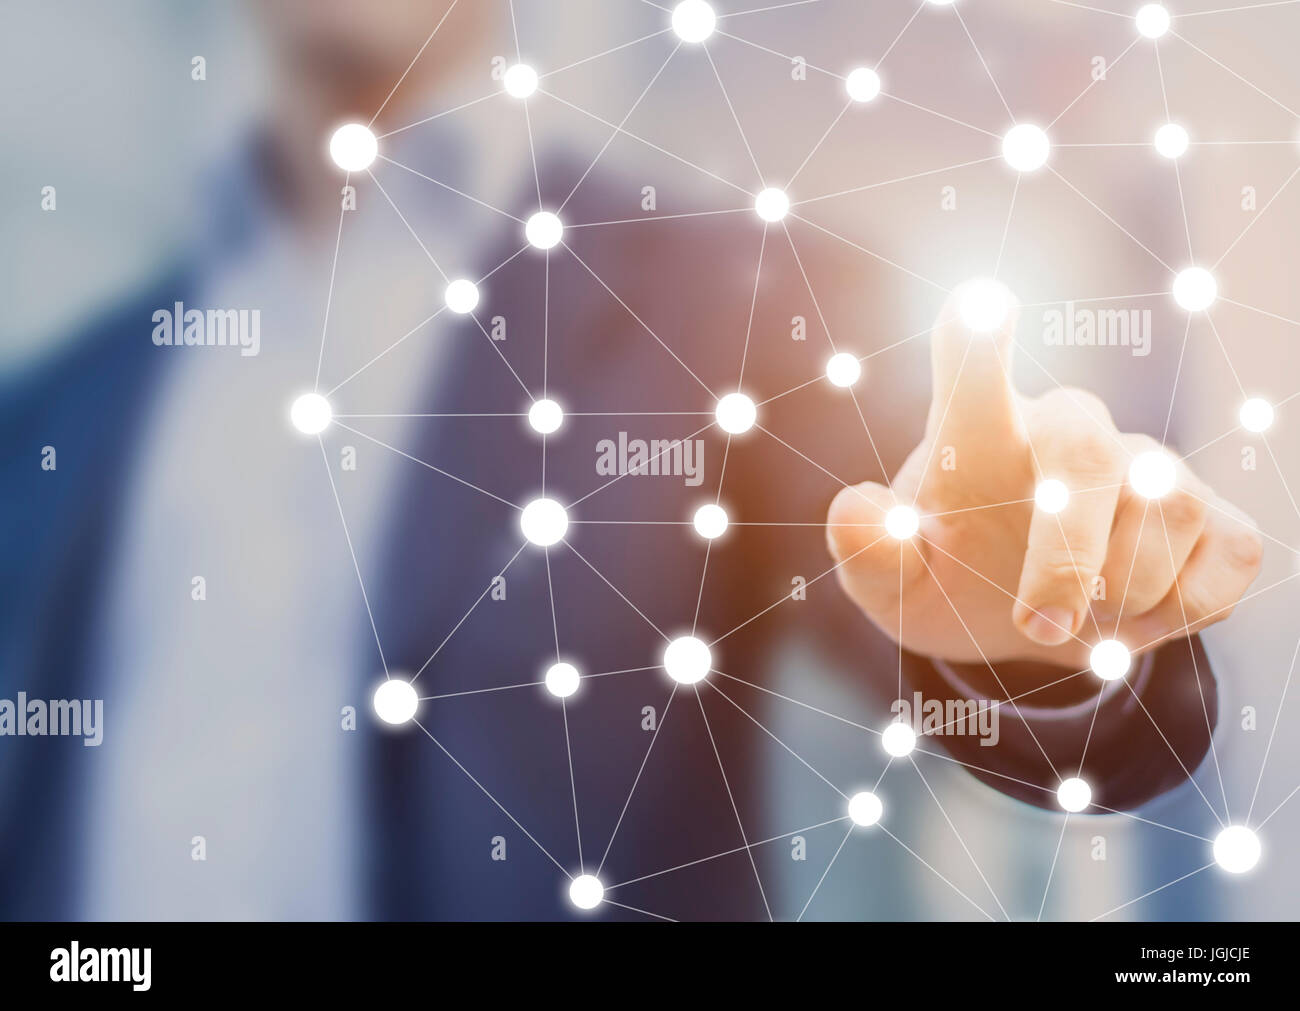 Person touching a network chart showing connections between nodes or servers, concept about the world wide web internet - Stock Image